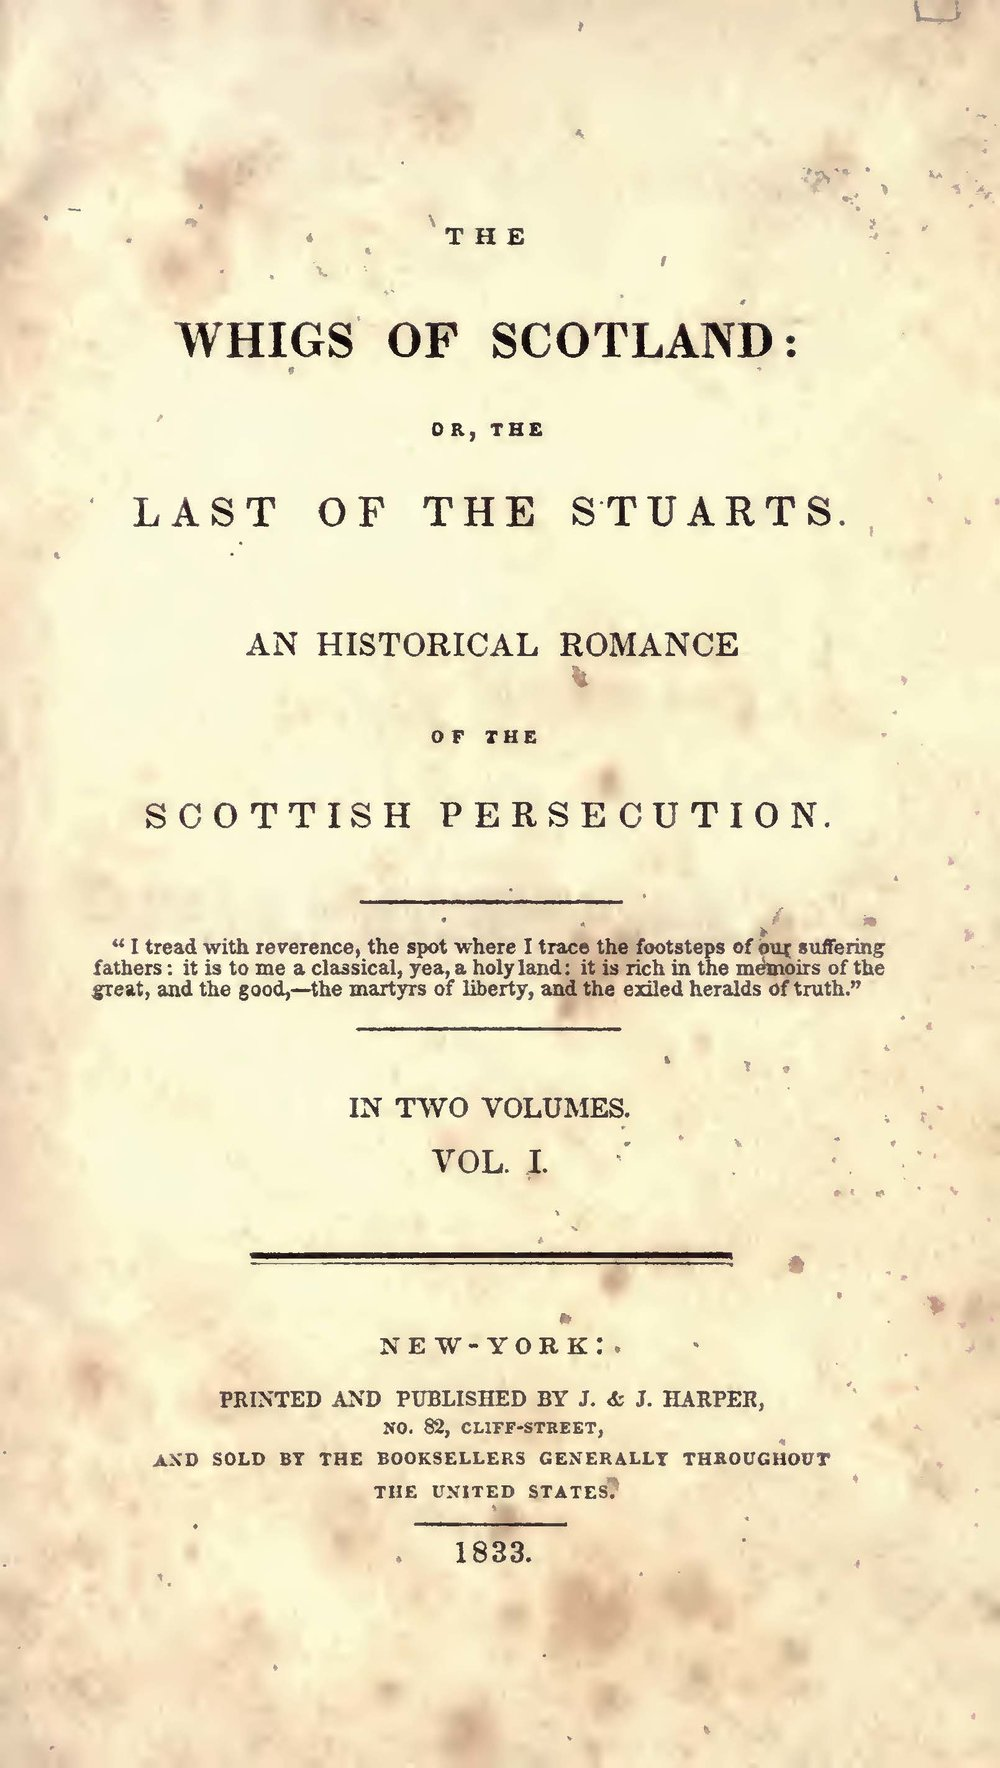 Brownlee, William Craig, The Whigs of Scotland or, The Last of the Stuarts An Historical Romance of the Scottish Persecution Vol. 1 Title Page.jpg